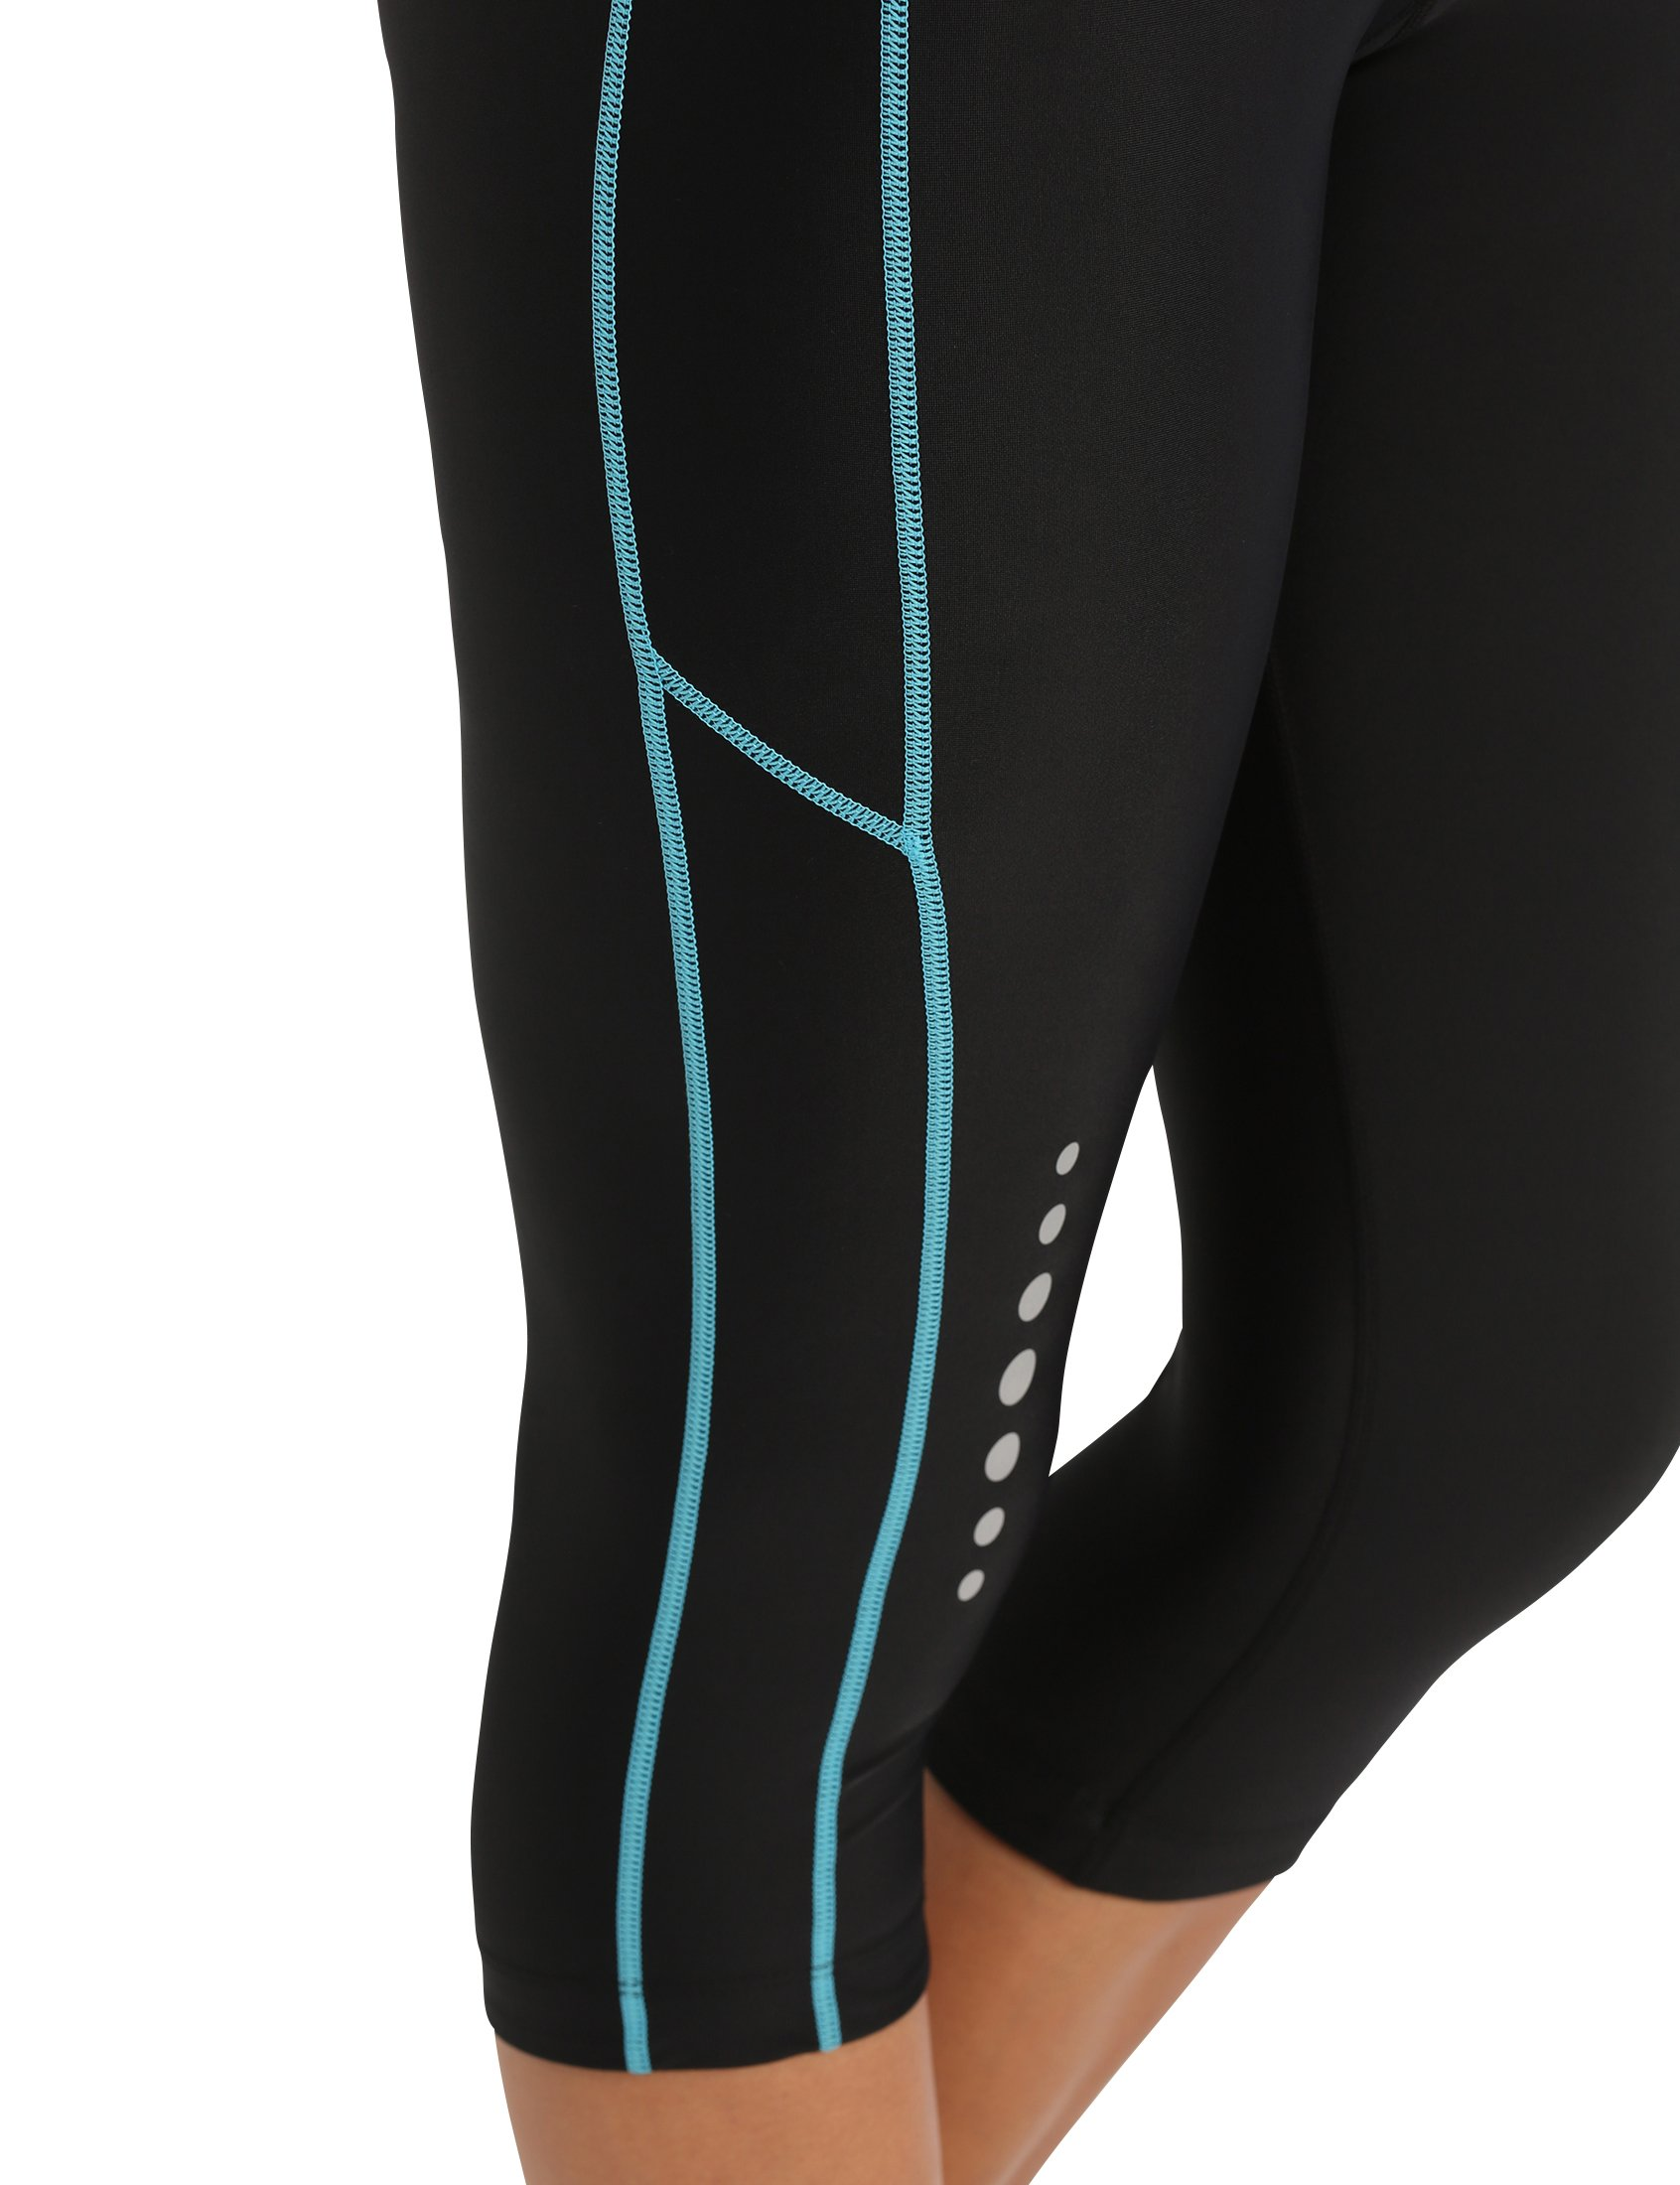 71aHCqAFA1L - Ultrasport Women's Running Pants Capri with Compression Effect & Quick-Dry-Function